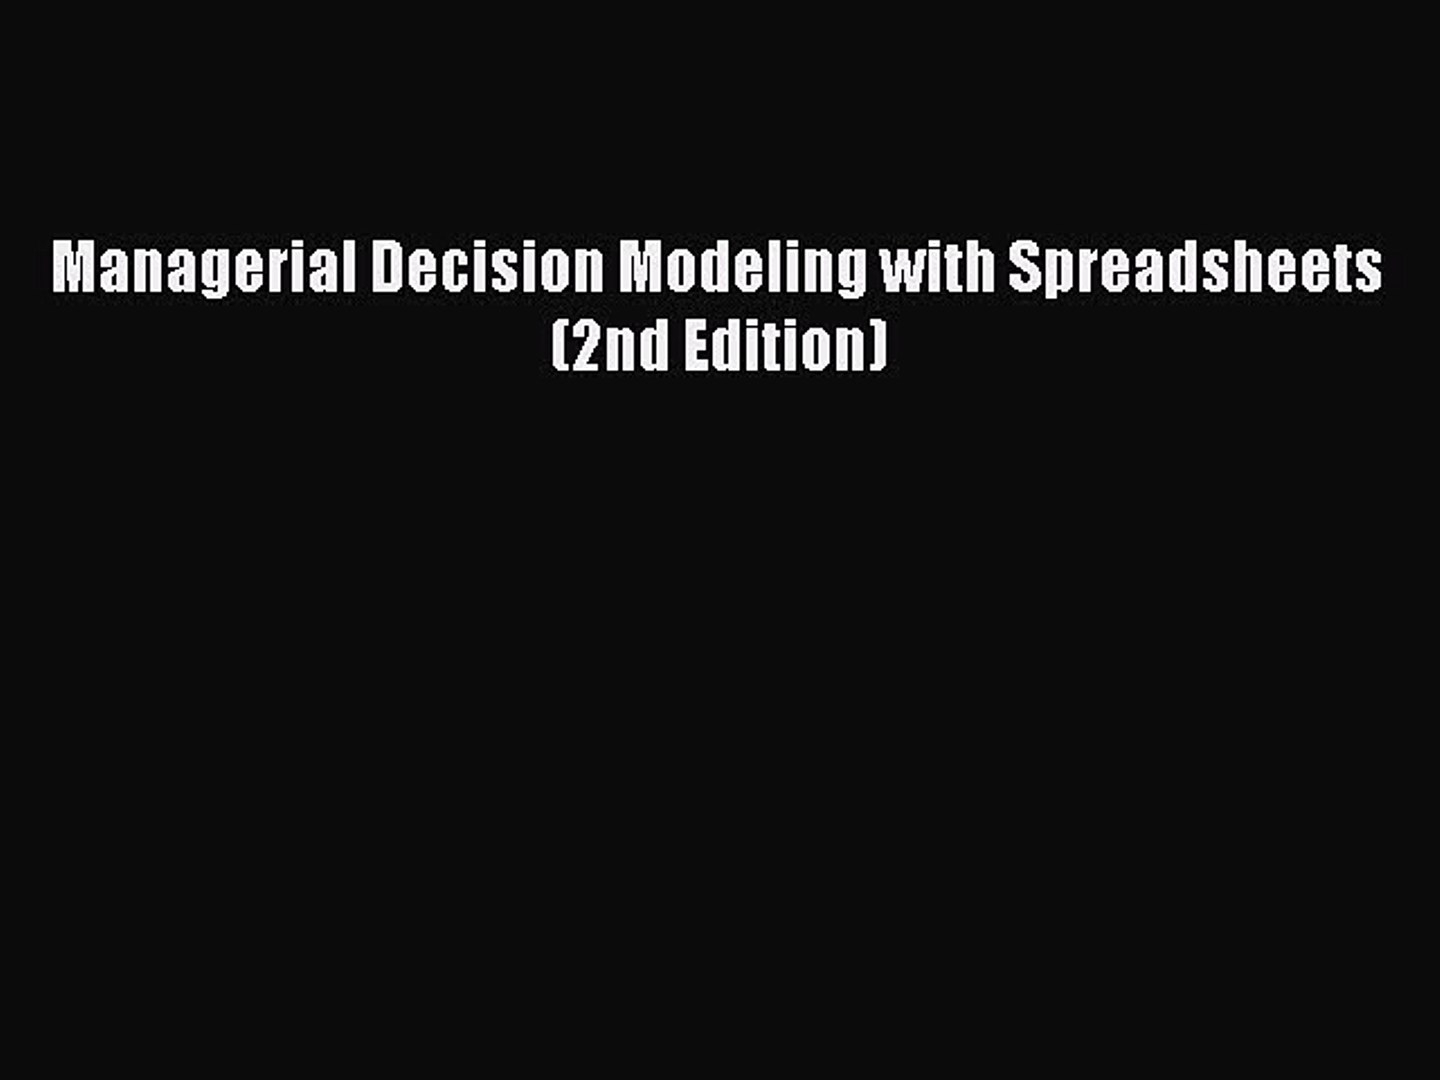 Managerial Decision Modeling With Spreadsheets 2Nd Edition Pdf Inside Pdf Download Managerial Decision Modeling With Spreadsheets 2Nd